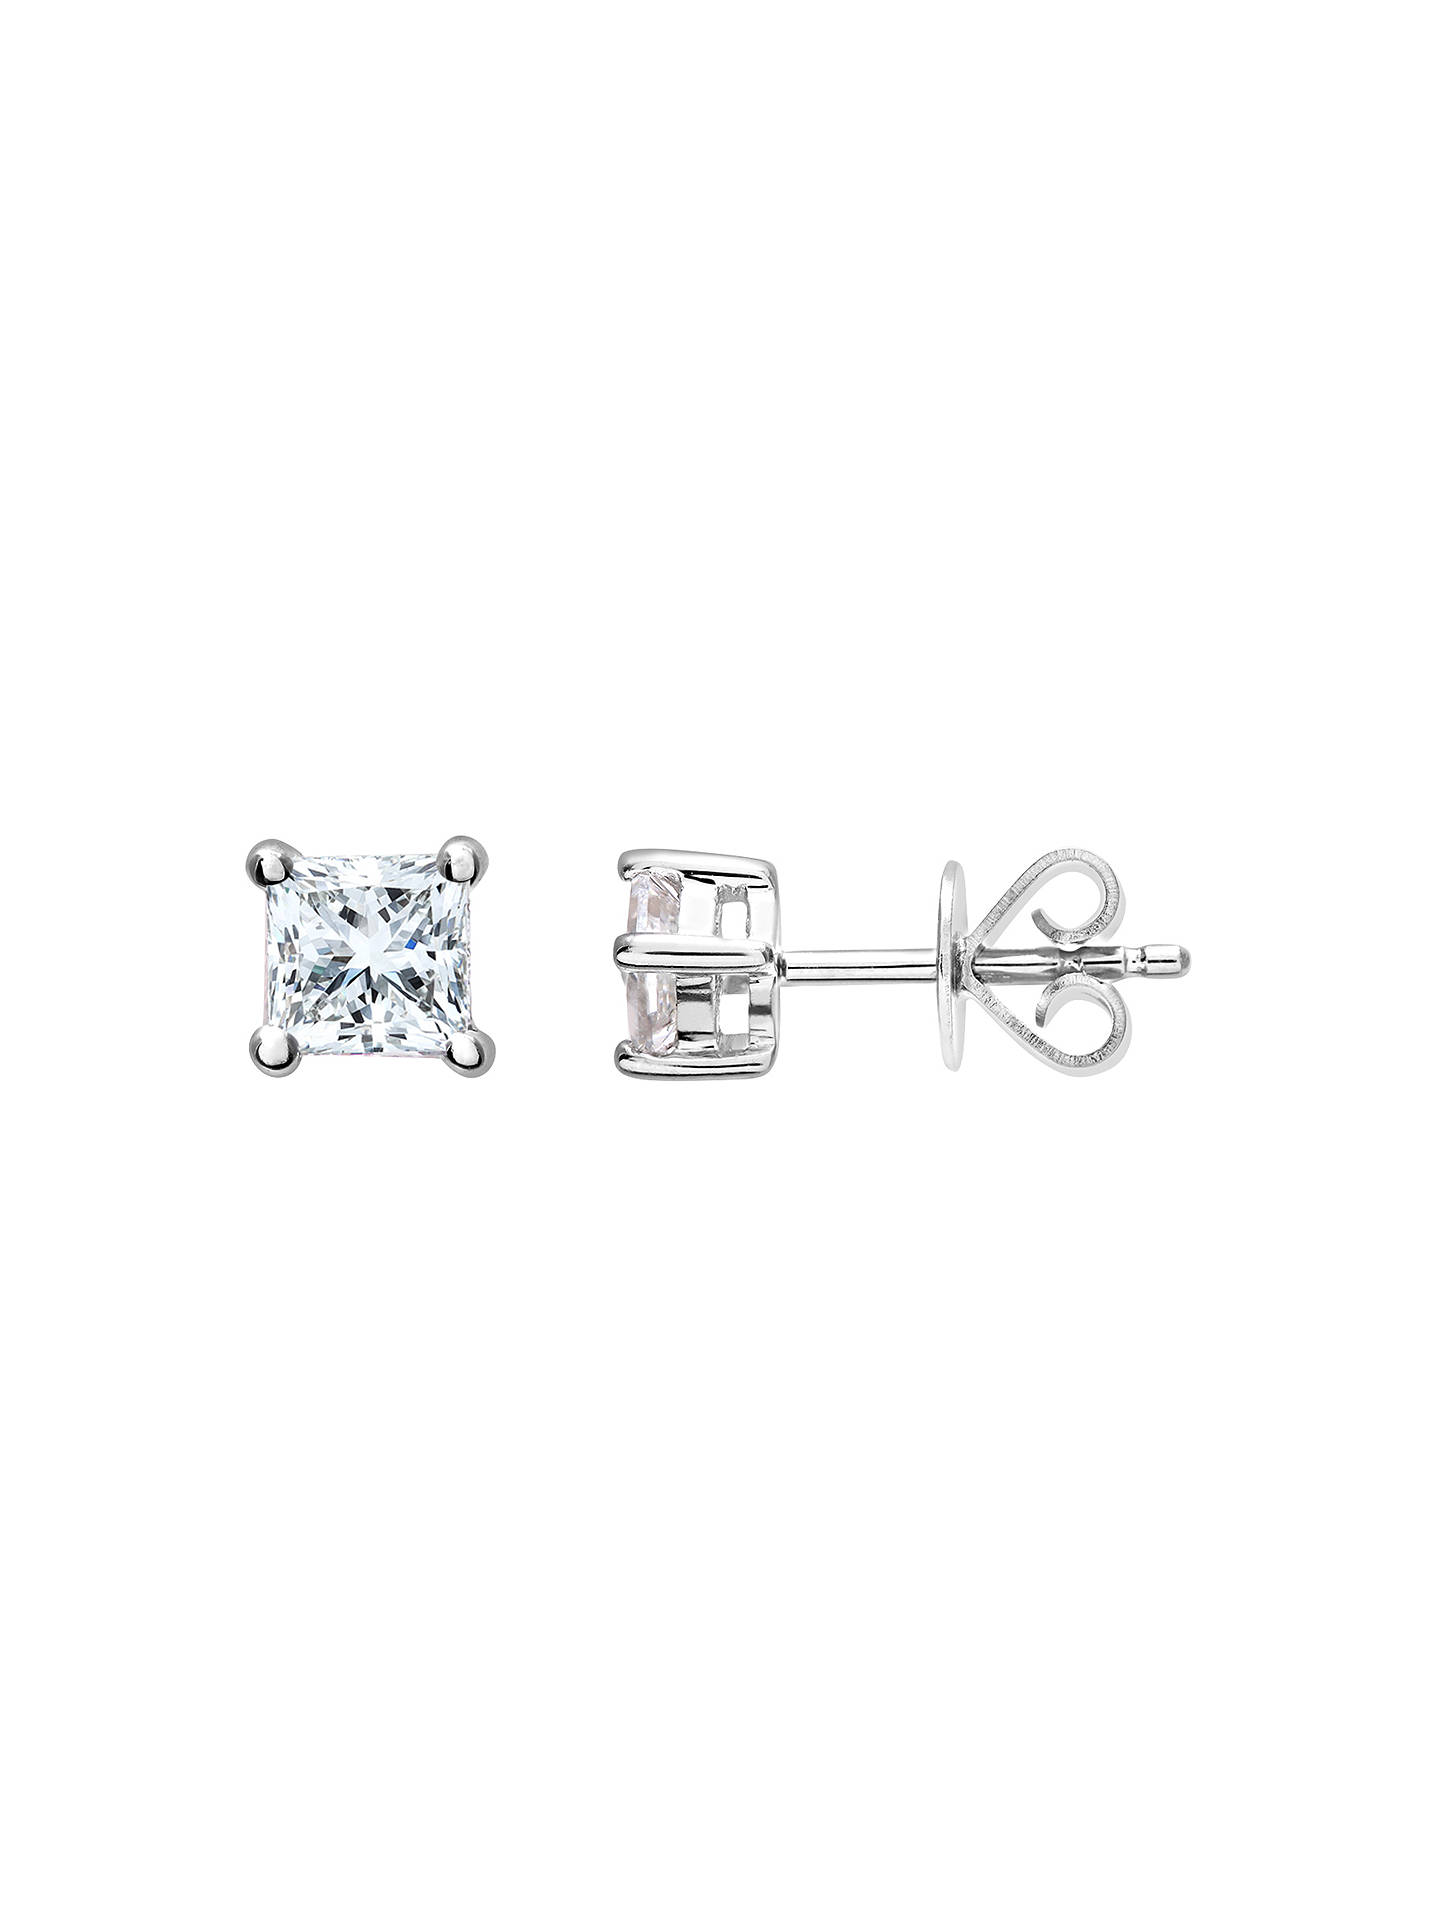 eac0d82ca ... Buy Mogul 18ct White Gold Princess Cut Diamond Solitaire Stud Earrings  and Pendant Necklace Jewellery Set ...